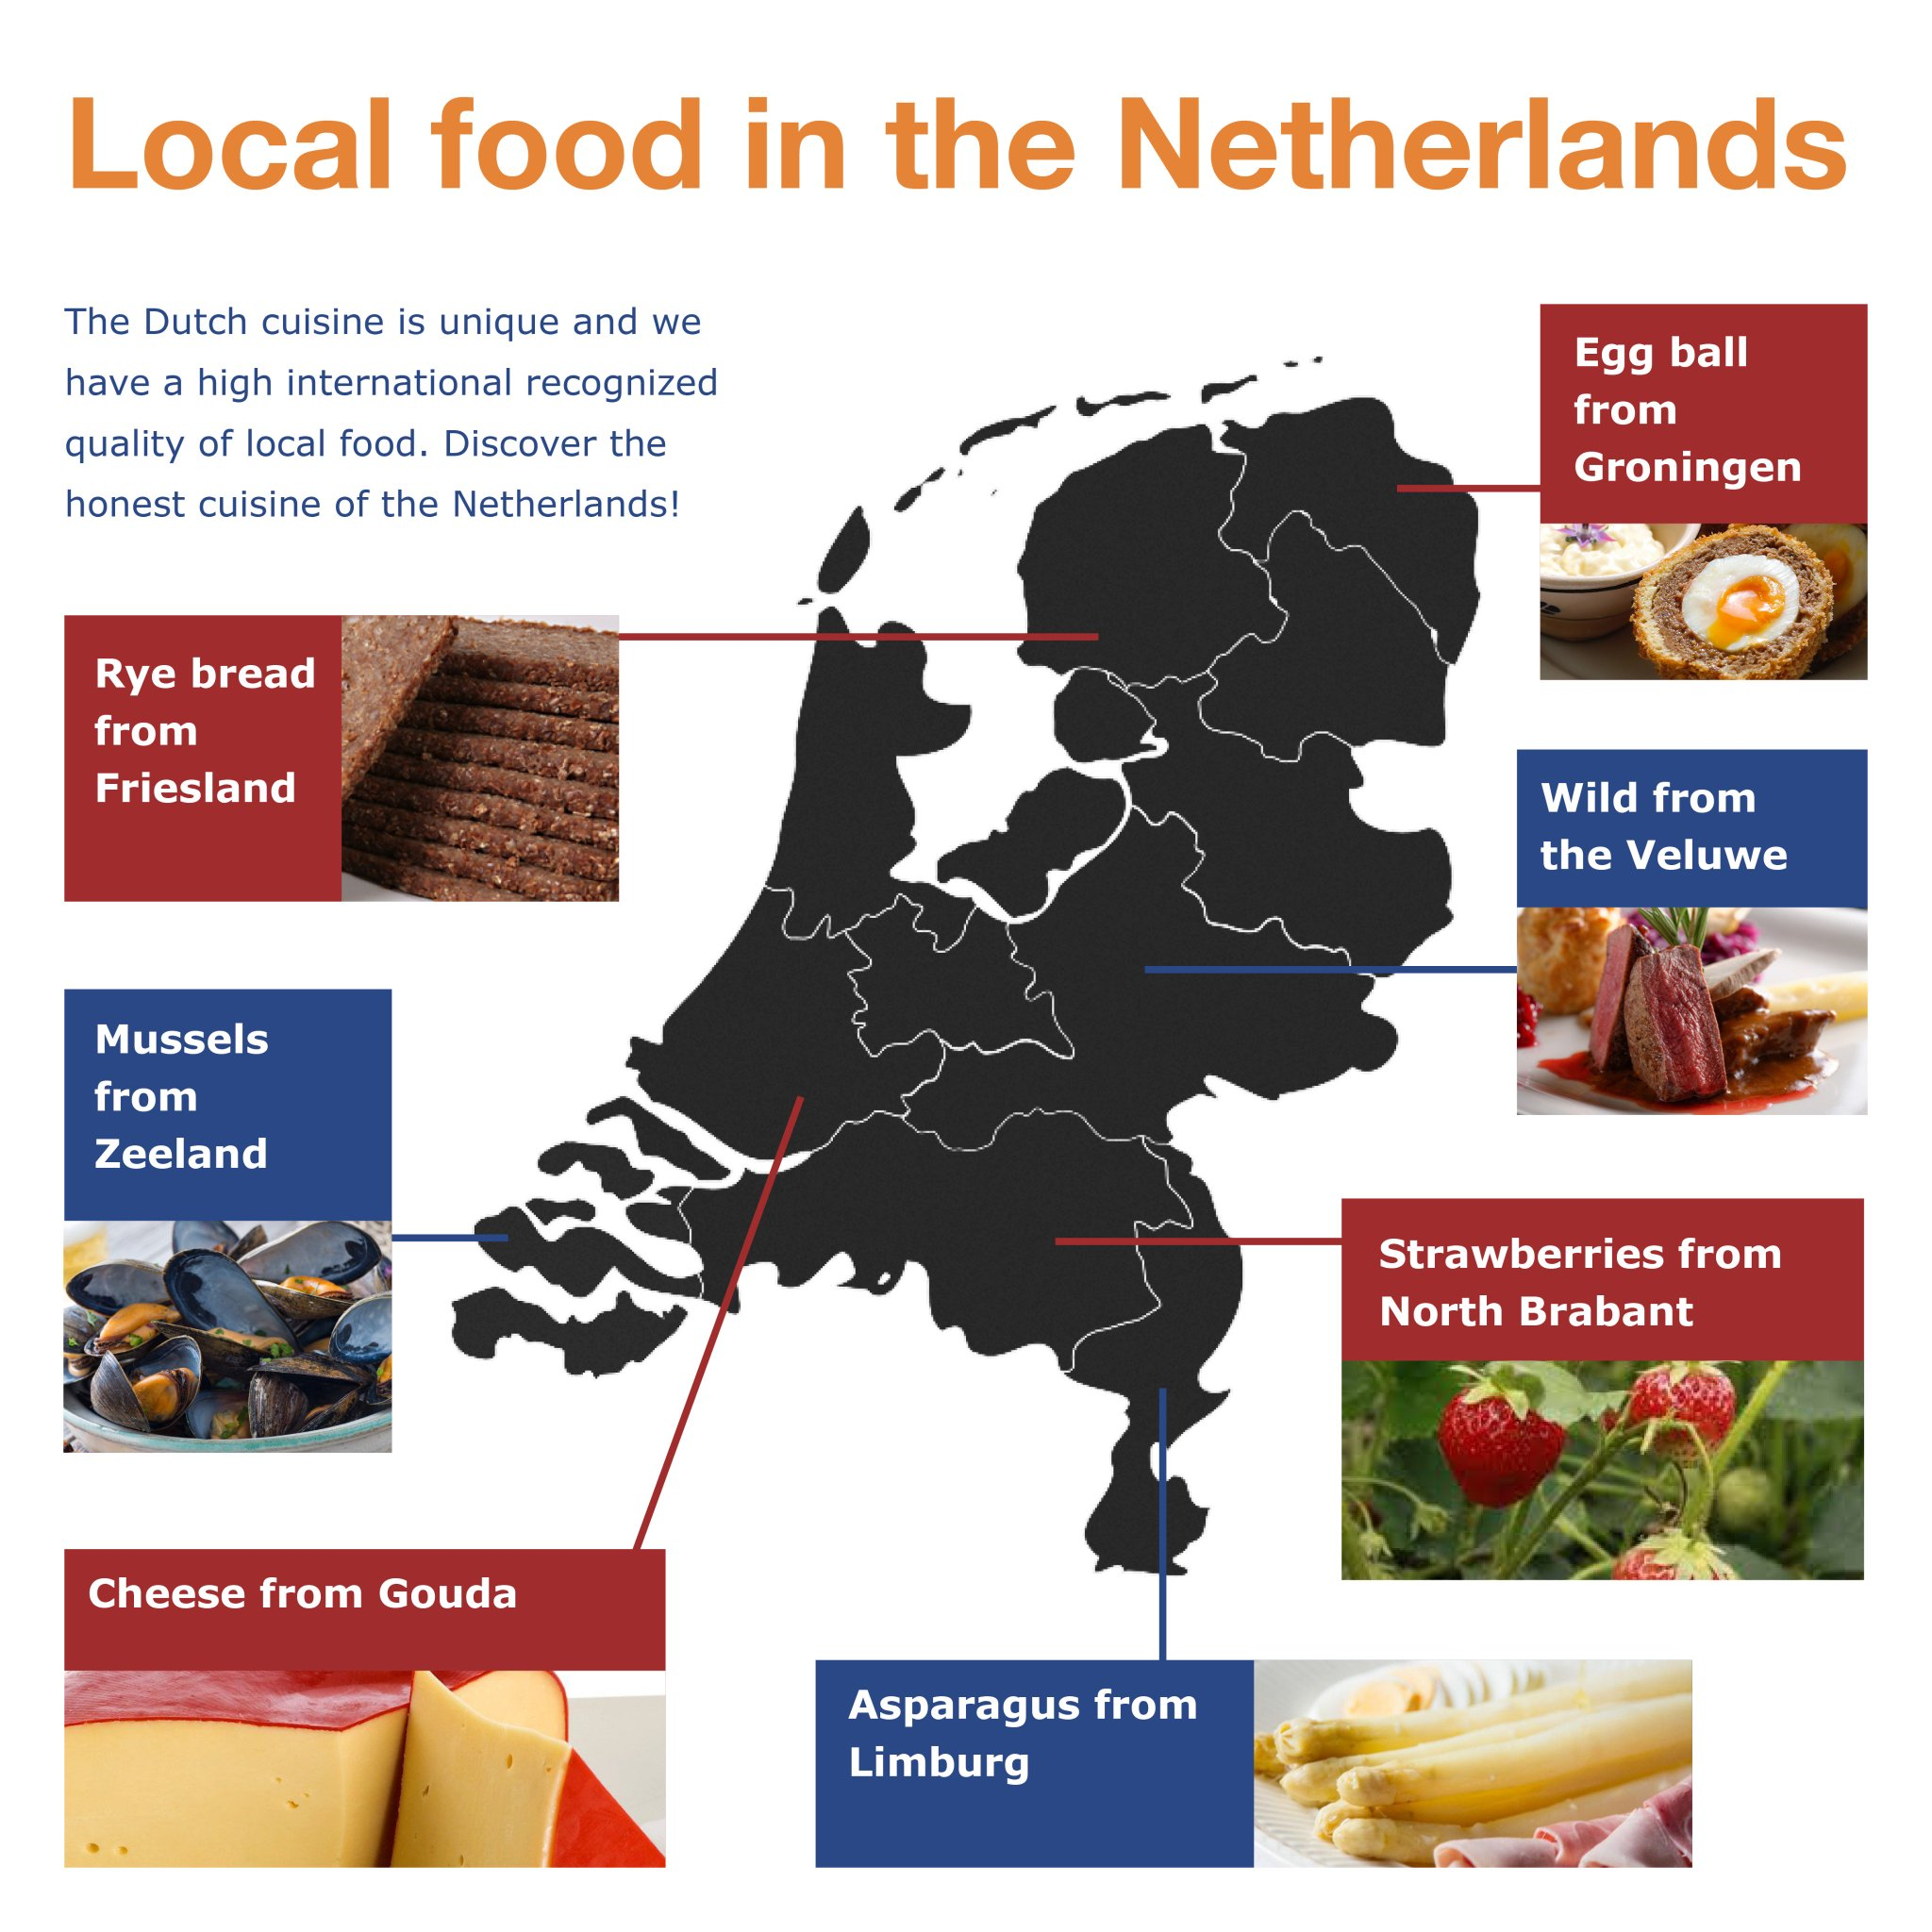 Nl Embassy Indonesia On Twitter The Dutch Cuisine Is Unique And We Have A High International Recognized Quality Of Local Food Discover The Honest Cuisine Of The Netherlands What Is Your Favorite